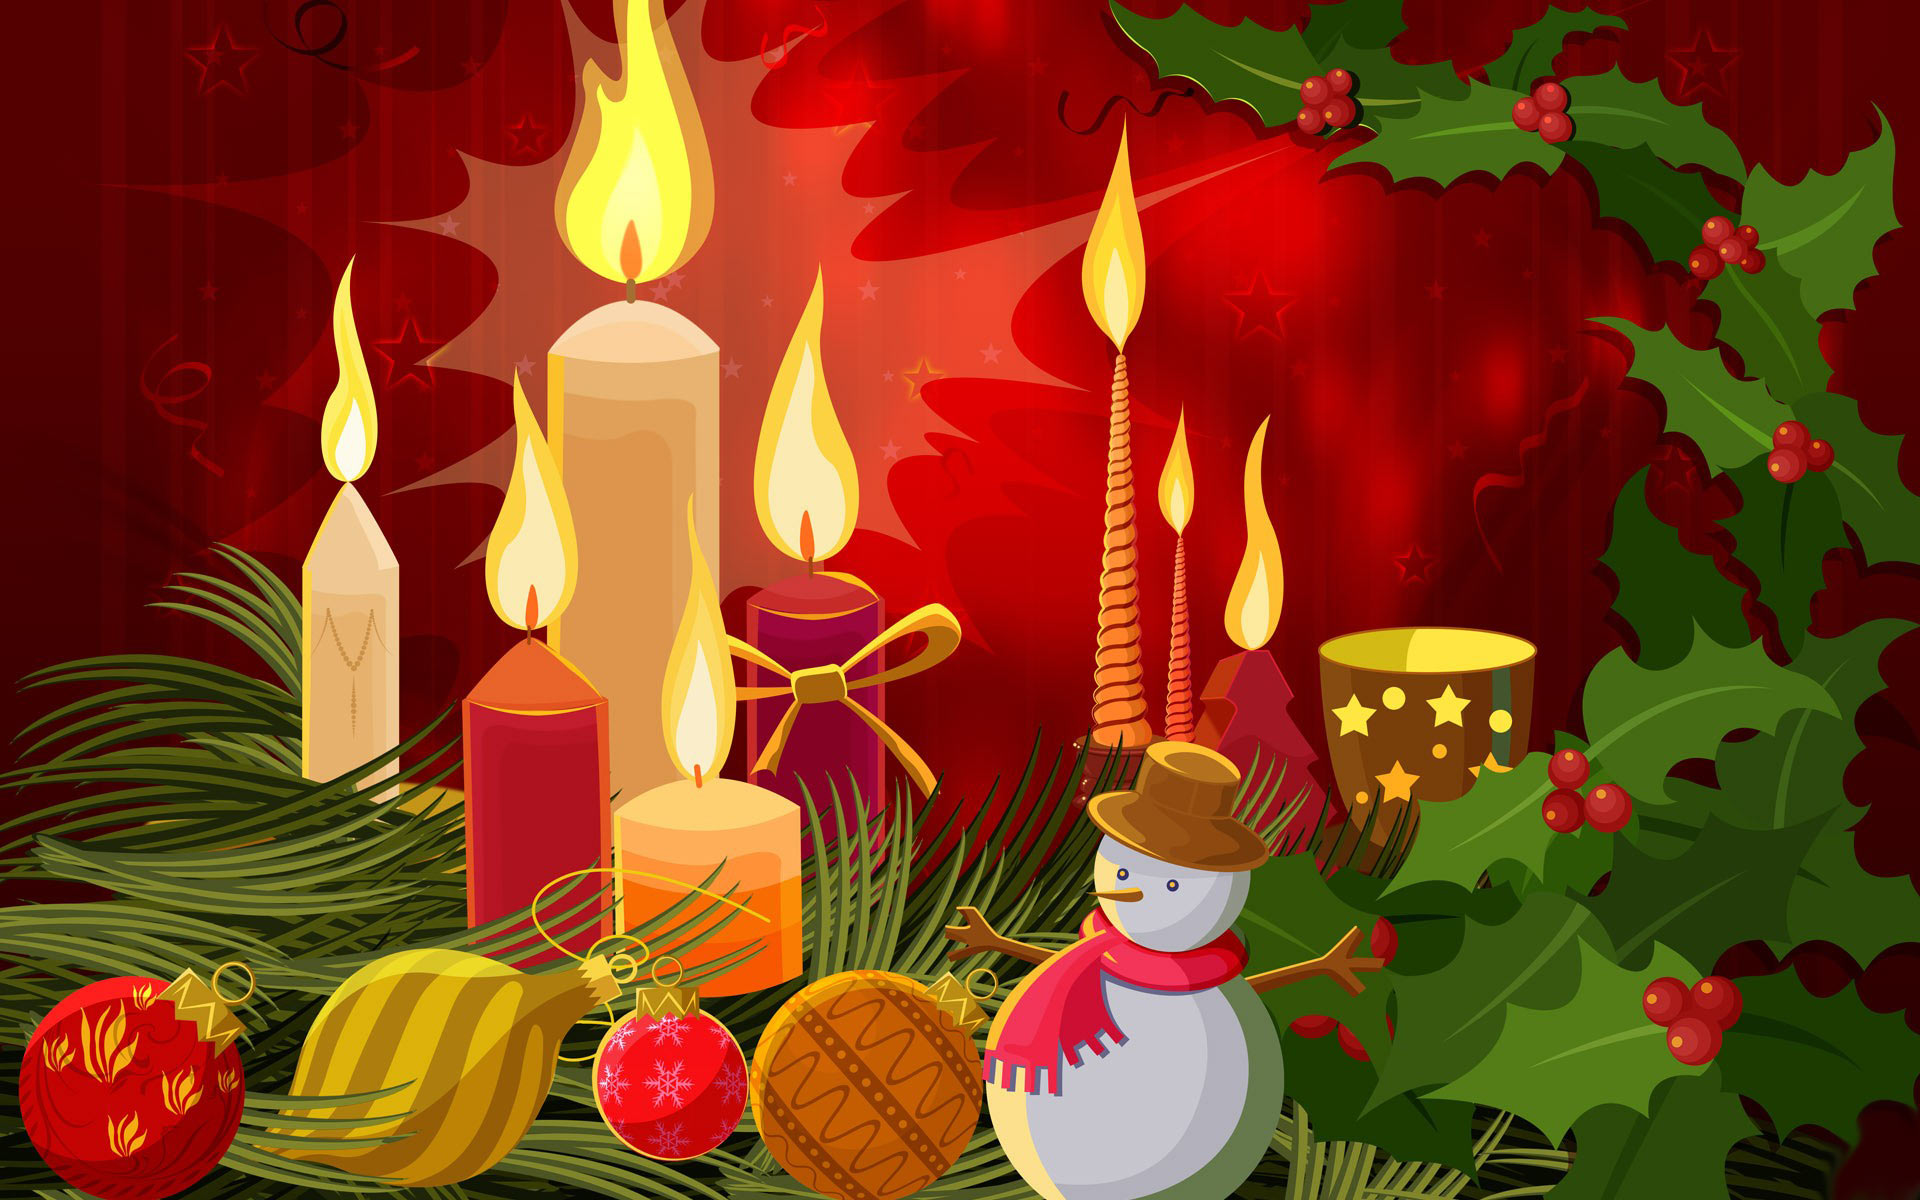 Simple Wallpaper High Quality Christmas - christmas-right-click-pc-Merry-Christmas-background-Desktop-High-Quality-Wa-wallpaper-wp5404104  Photograph_75184.jpg